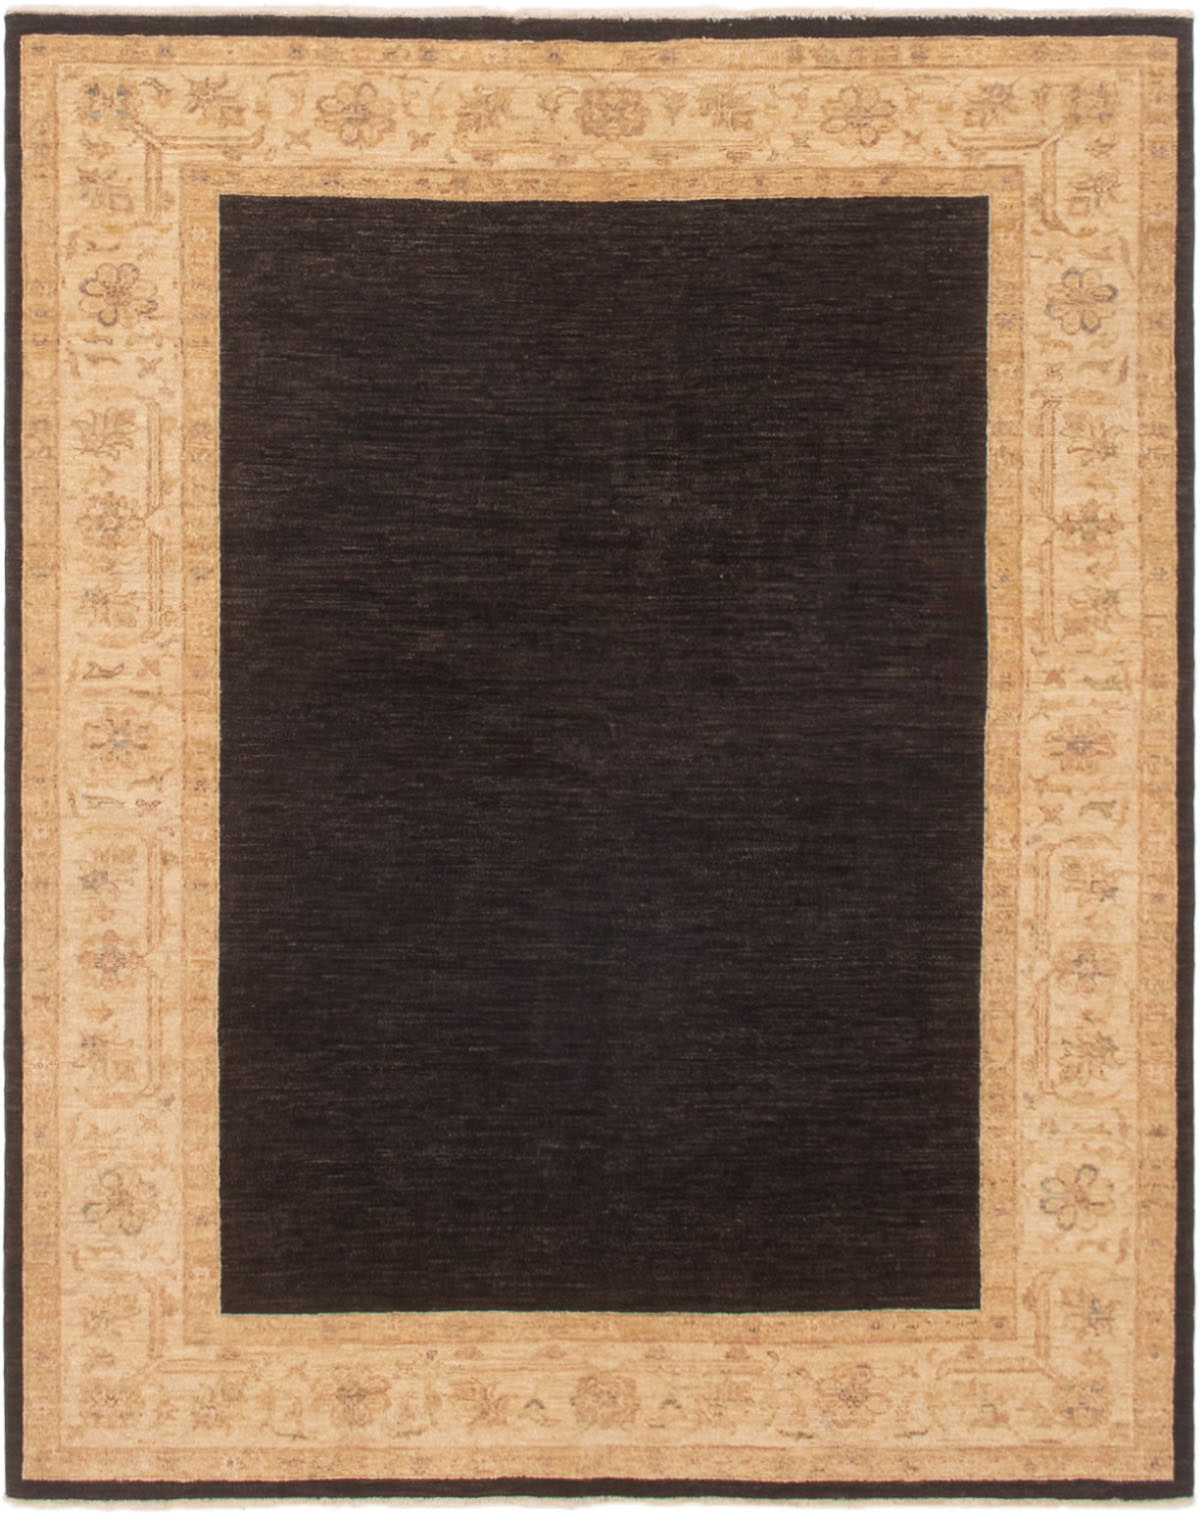 """Hand-knotted Chobi Finest Black Wool Rug 5'1"""" x 6'3"""" Size: 5'1"""" x 6'3"""""""